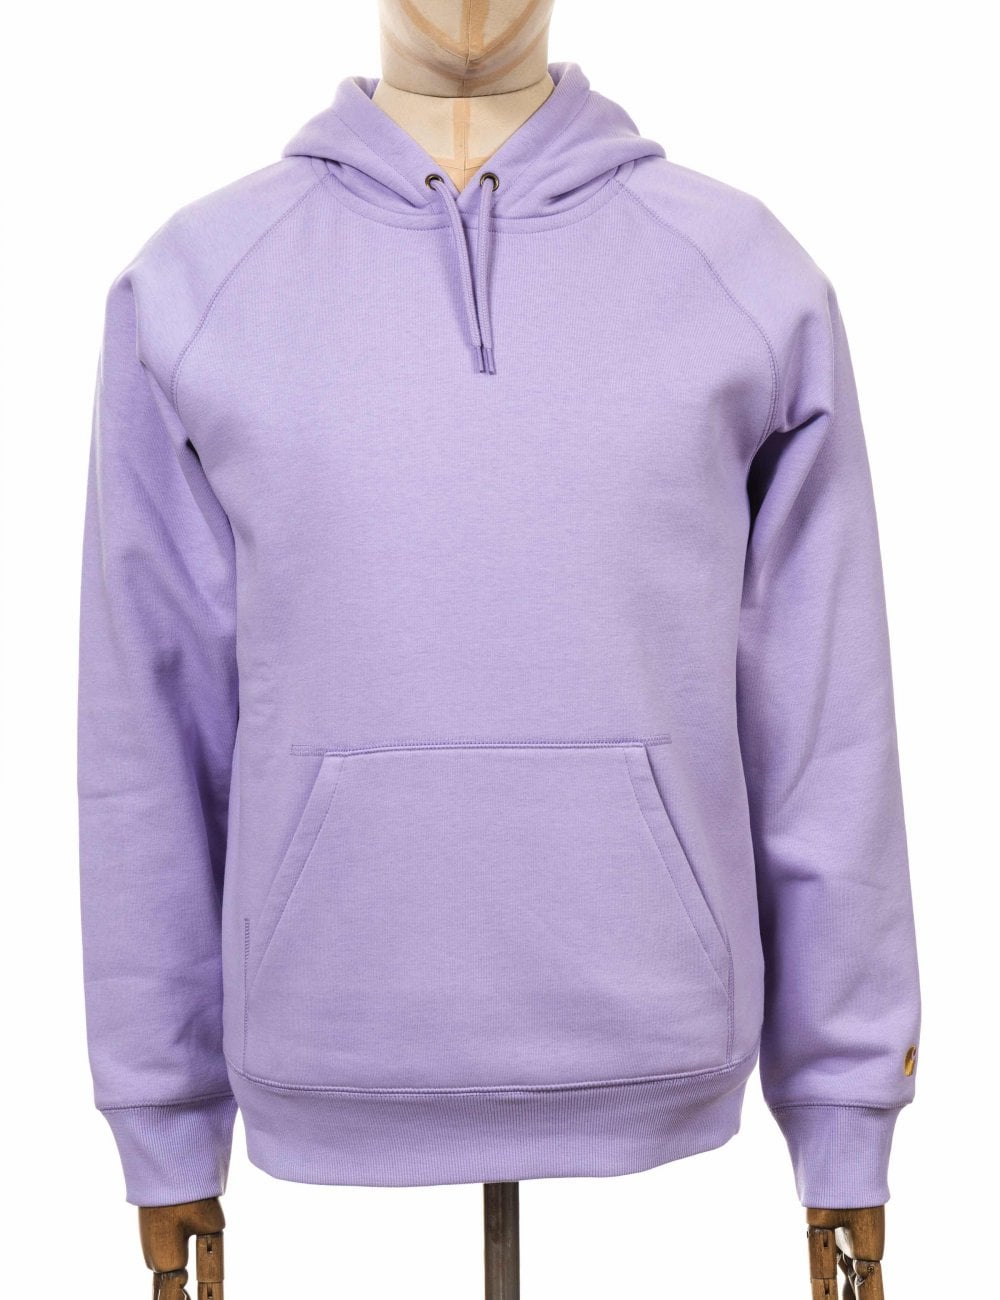 f550c00352a Carhartt WIP Hooded Chase Sweatshirt - Soft Lavender - Clothing from ...